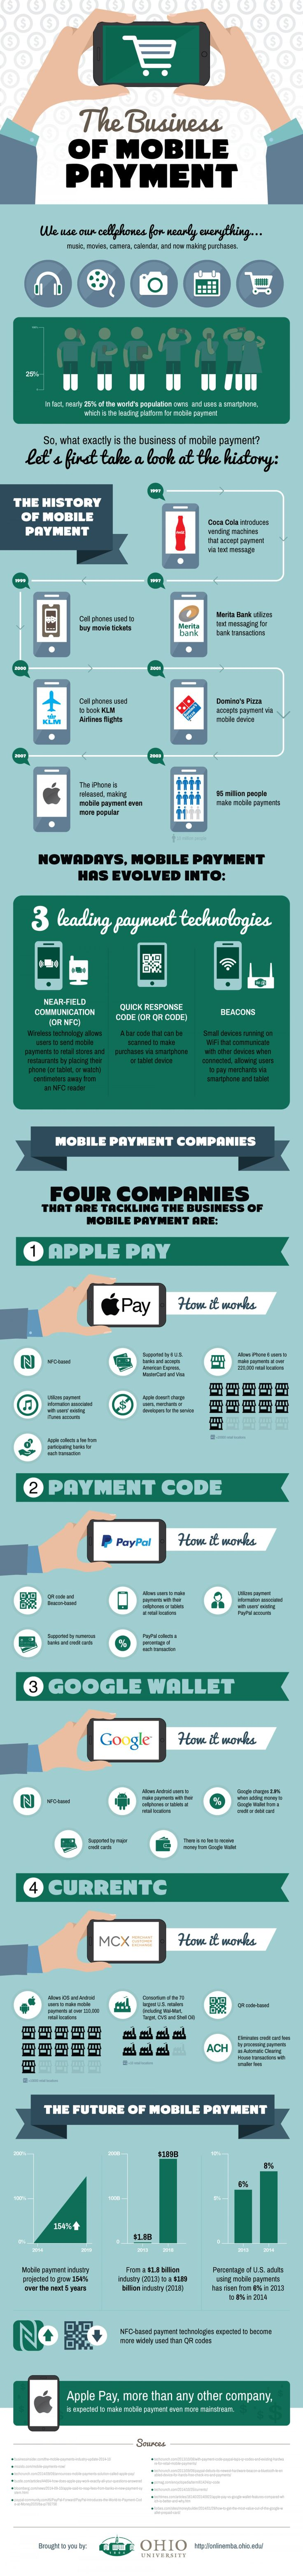 #Infographic: The #Business of Mobile Payment. #mPayments